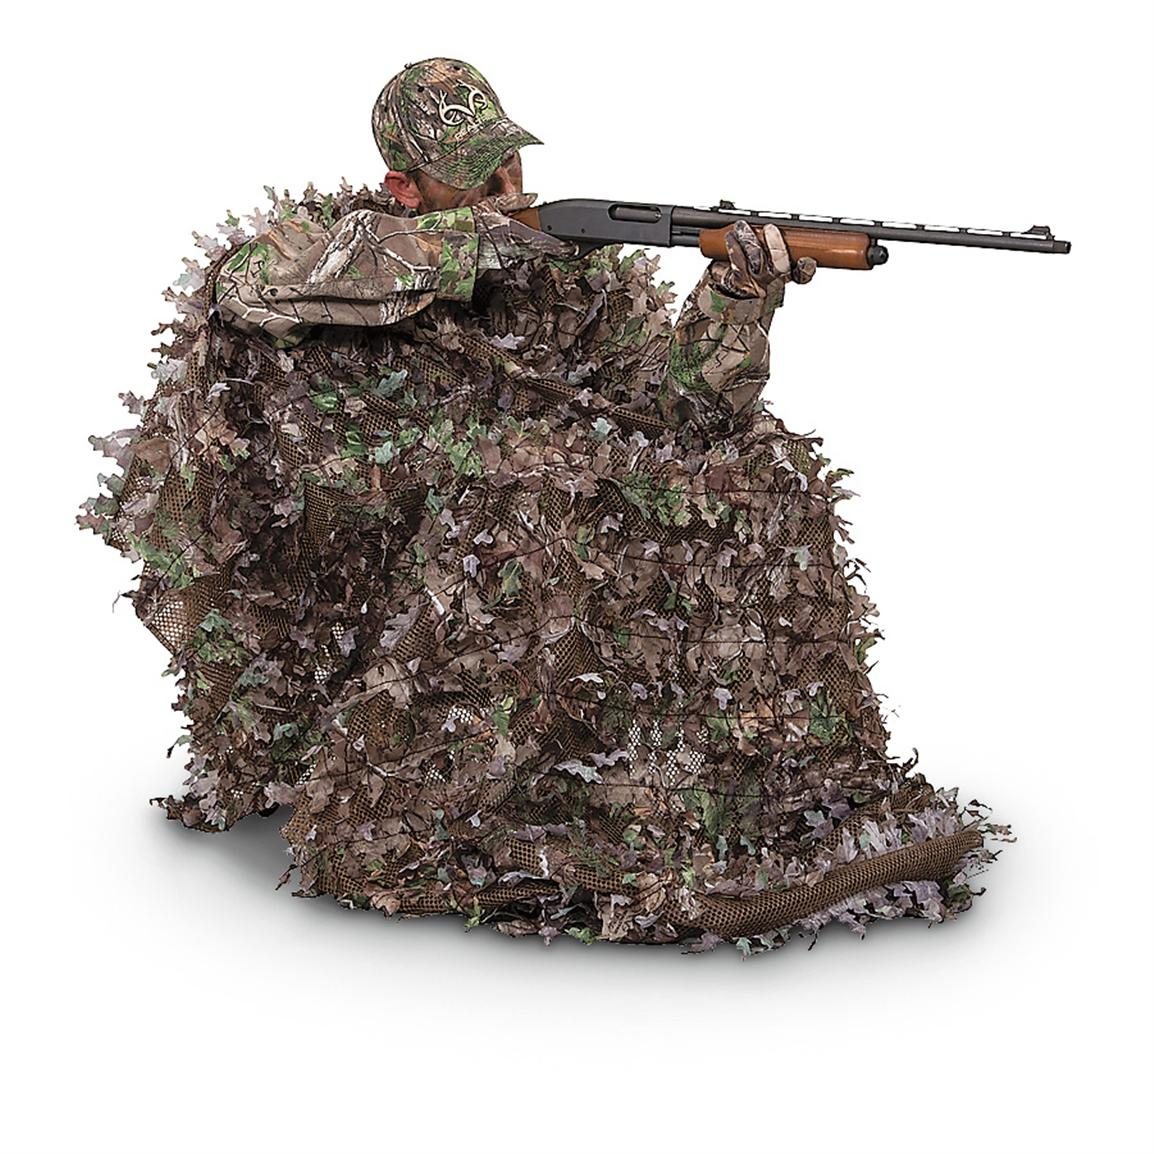 3D Chair and Cover System, Realtree AP • 200-lb. capacity